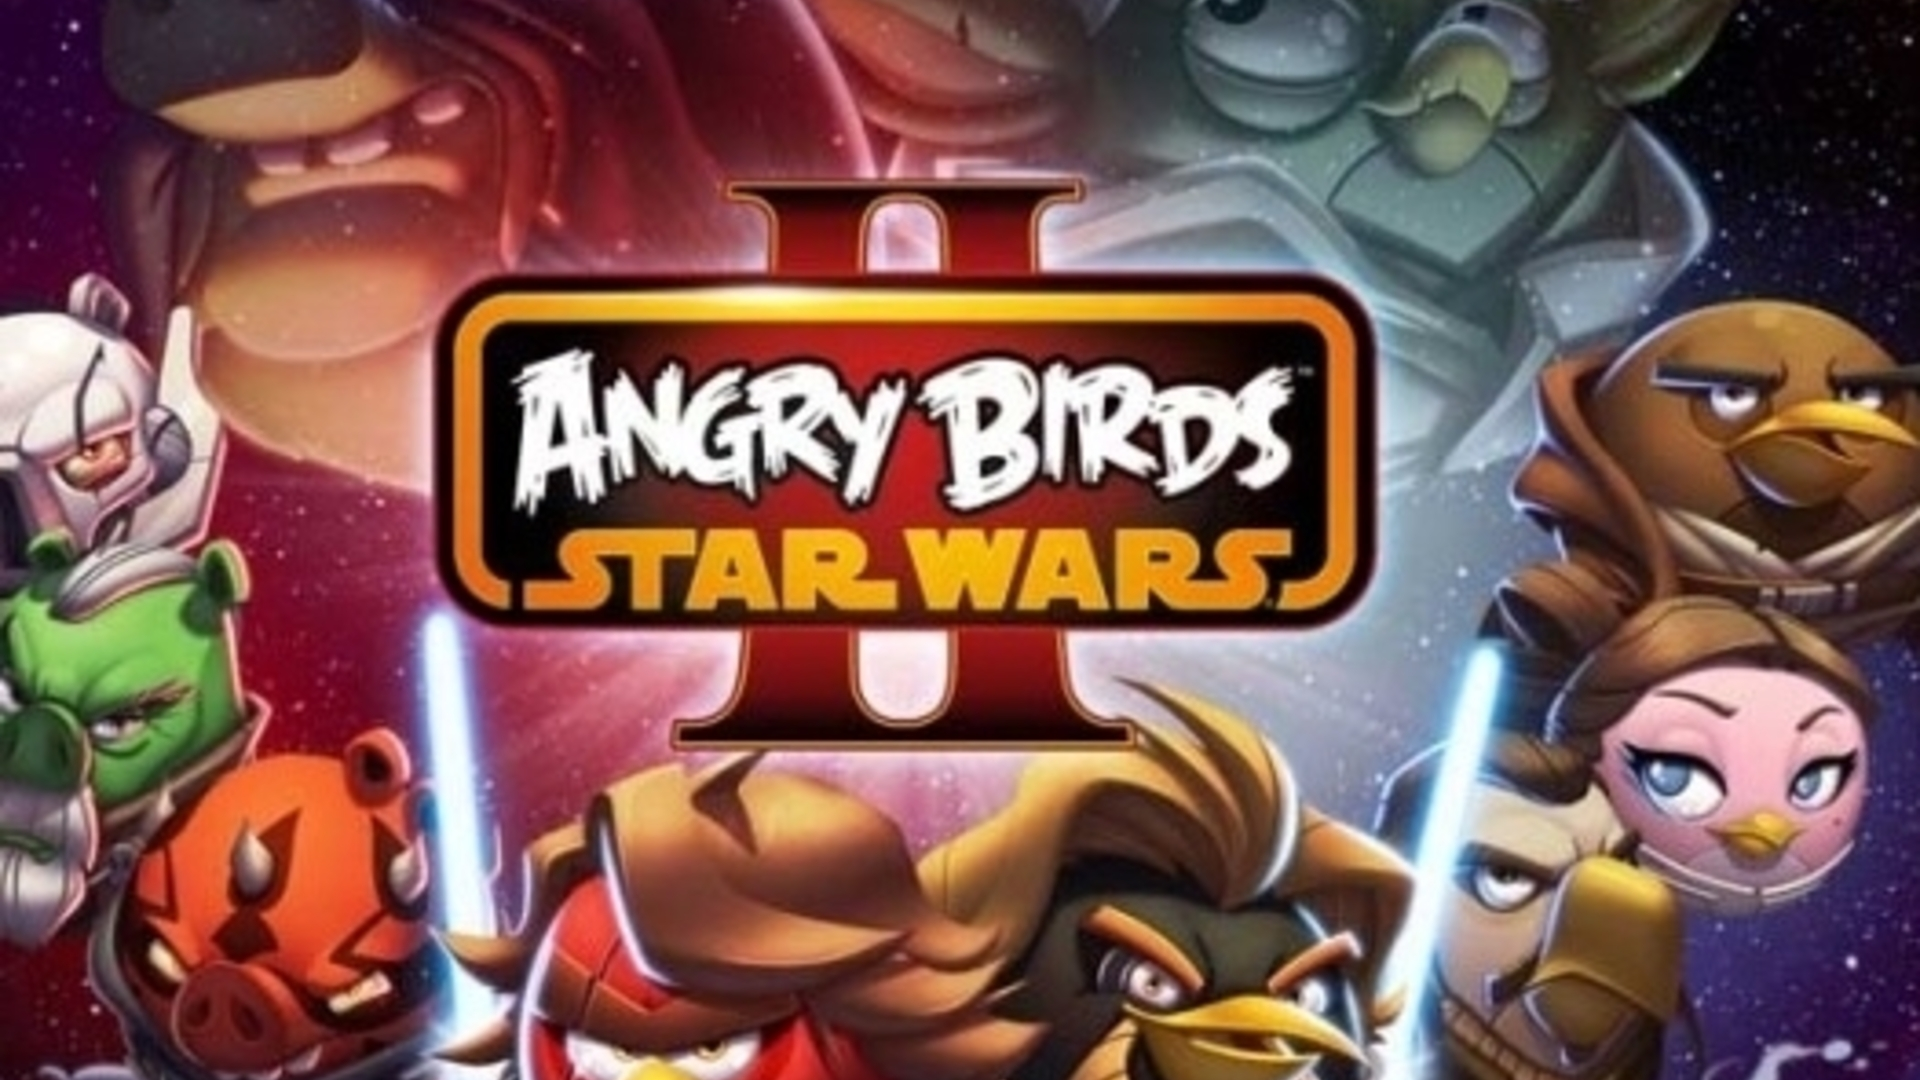 Angry Birds: Star Wars 2 features the voice of Emperor Palpatine